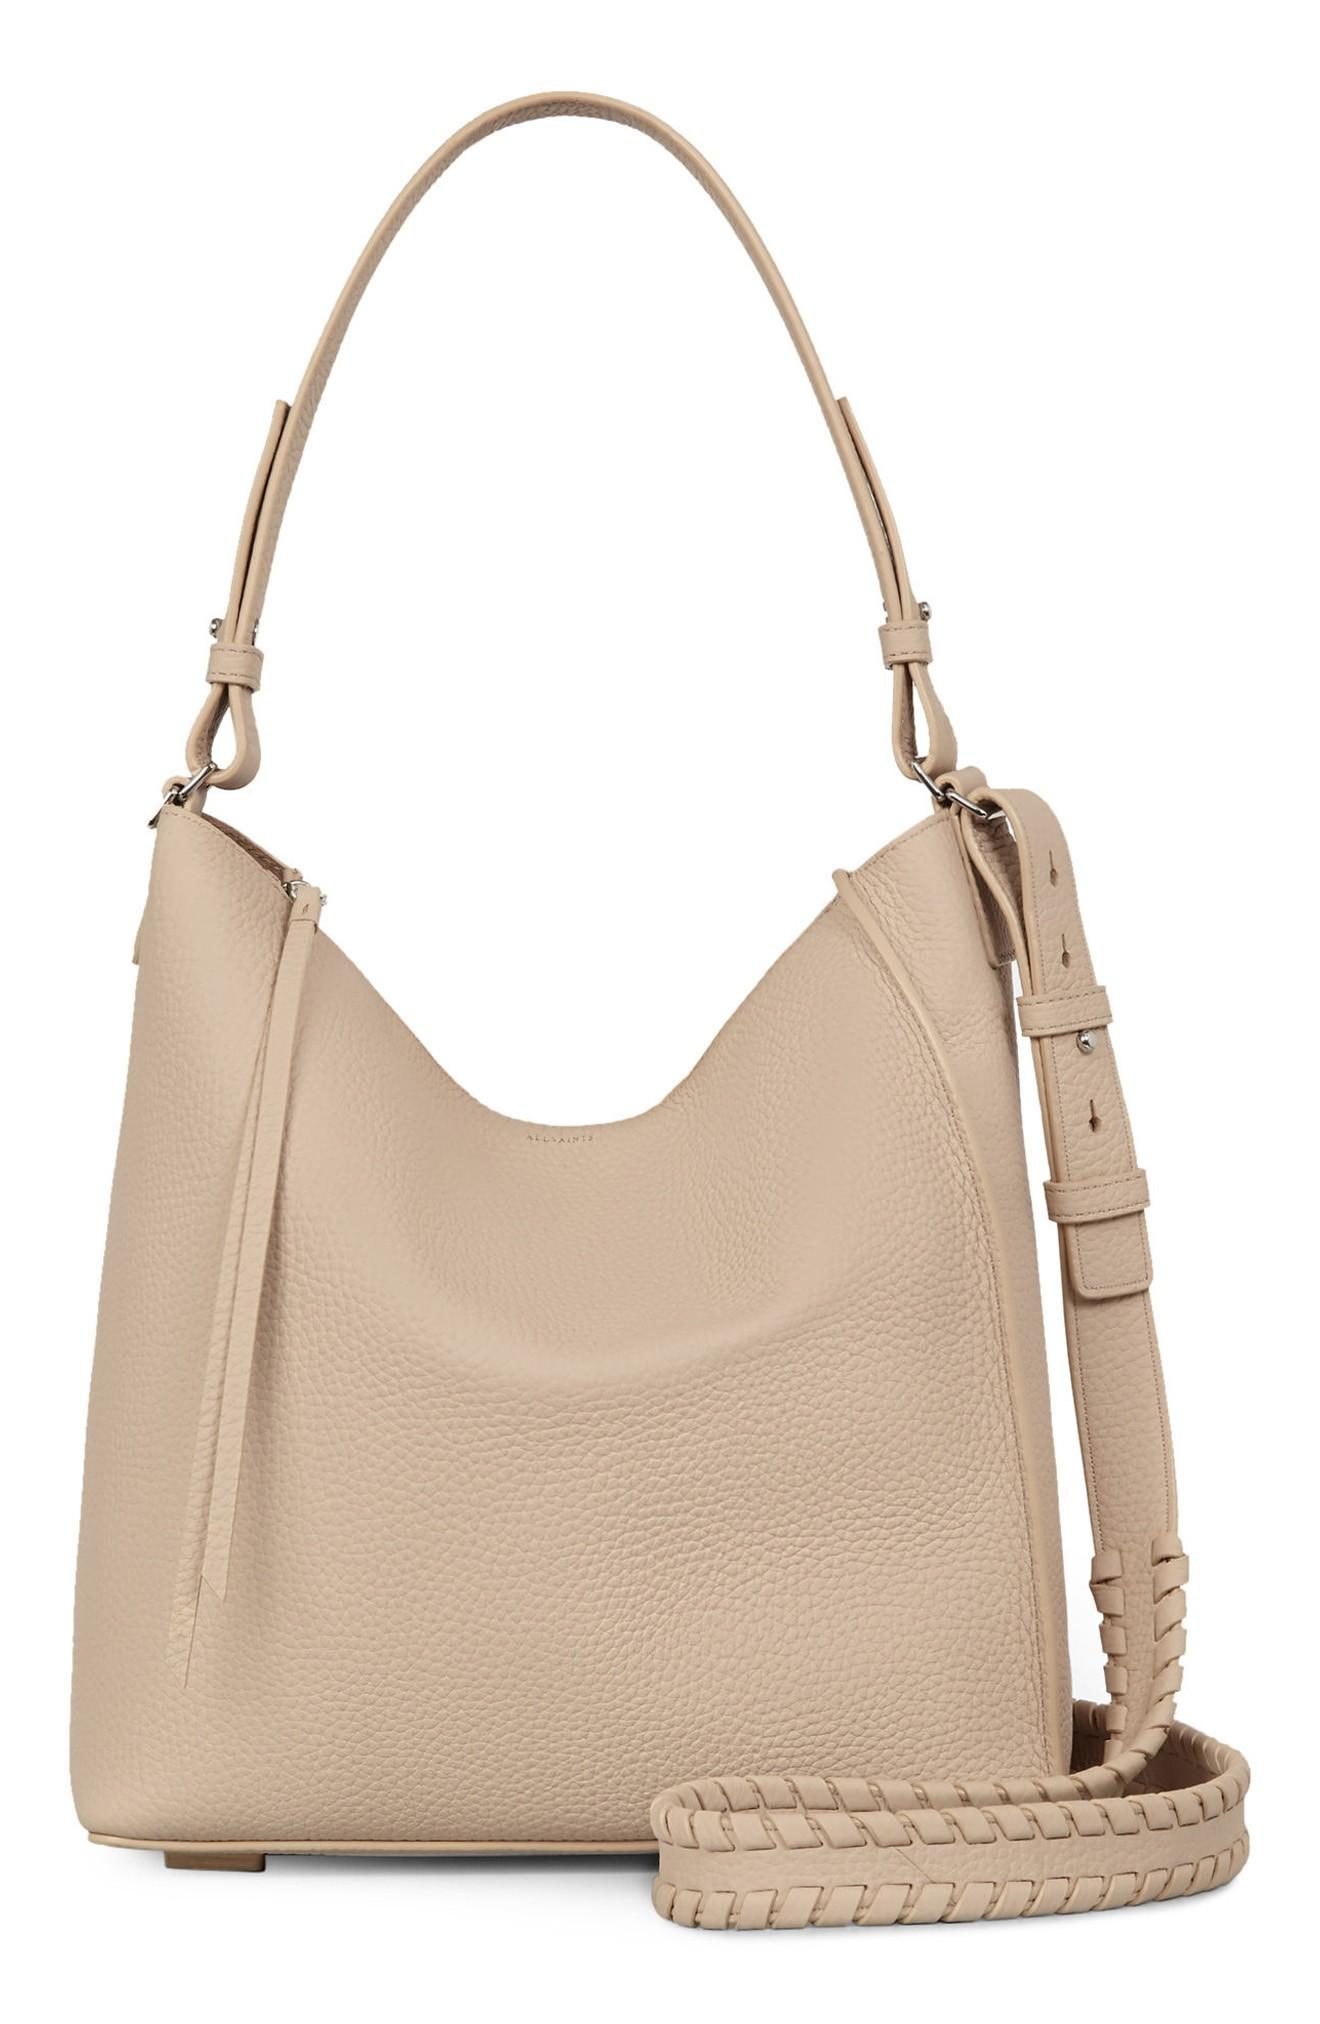 Allsaints 'kita' Leather Shoulder/crossbody Bag - Beige In Natural